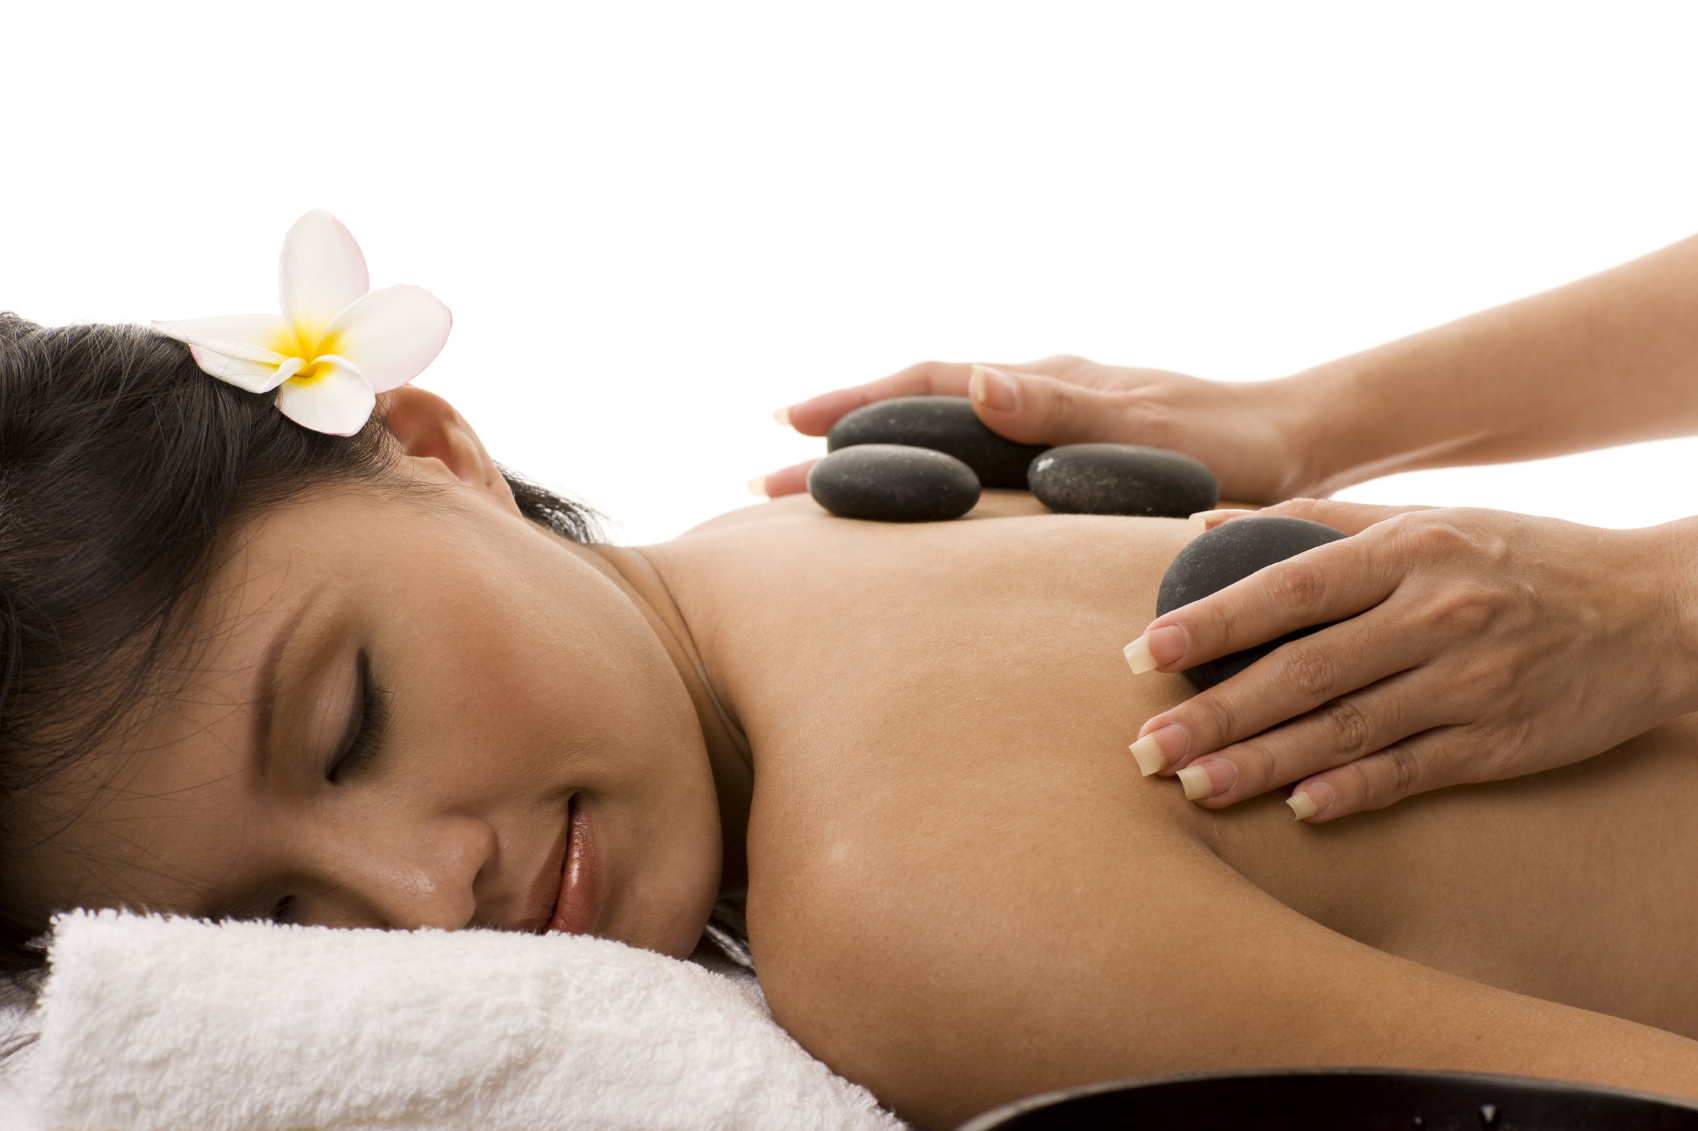 Considering a Career in Massage Therapy? Here's How to Get Started!